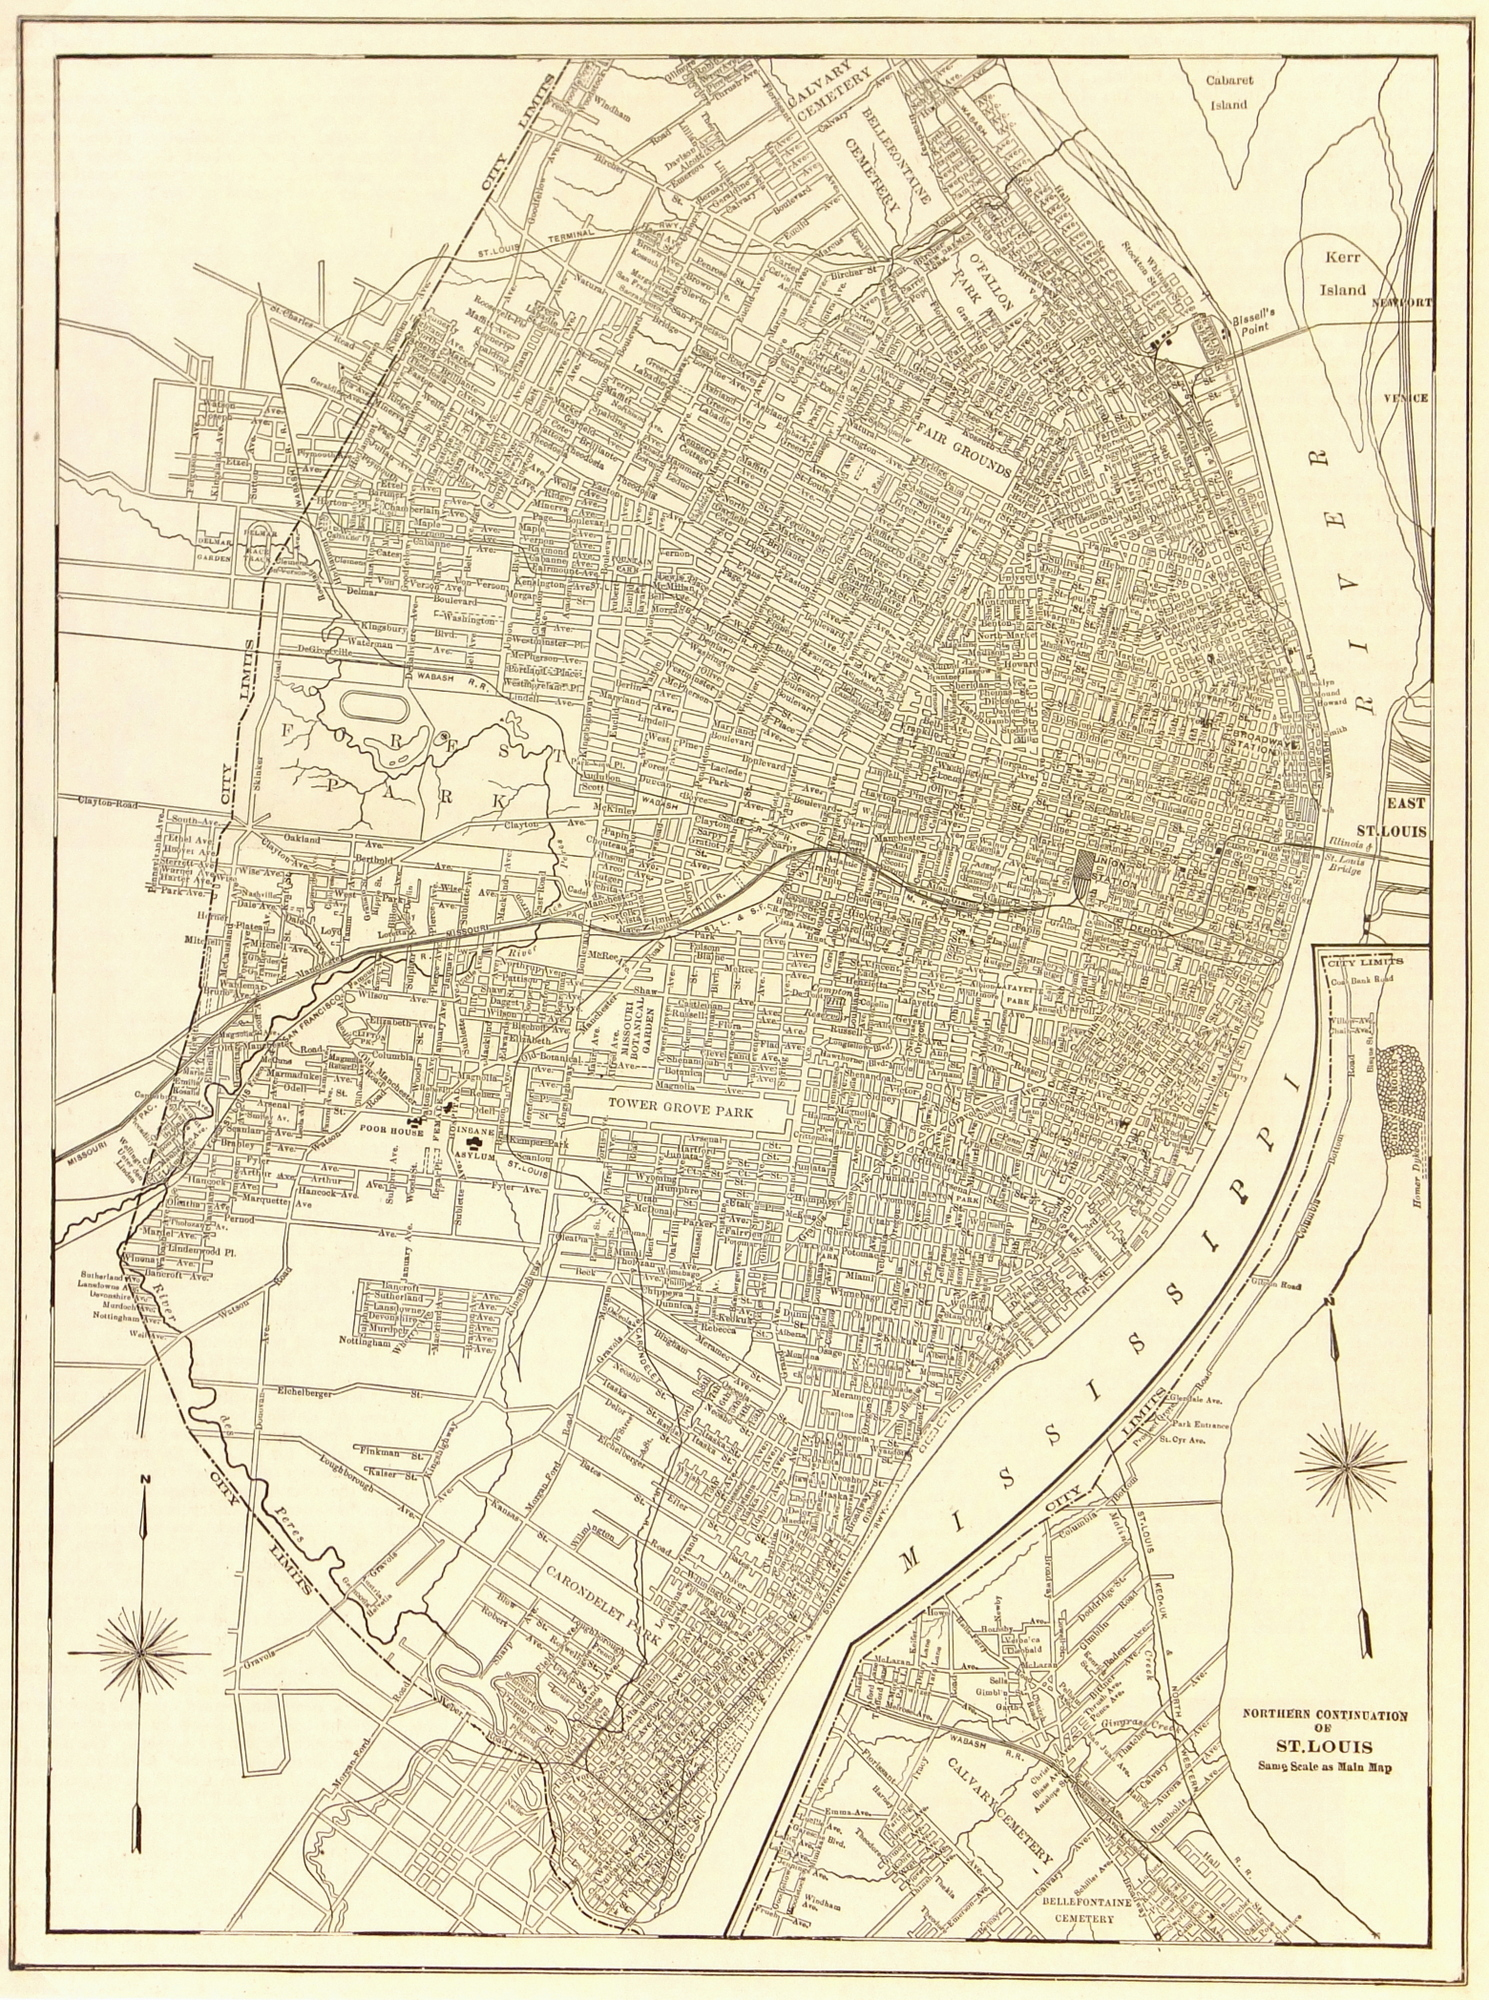 St. Louis, 1907-main-7651K